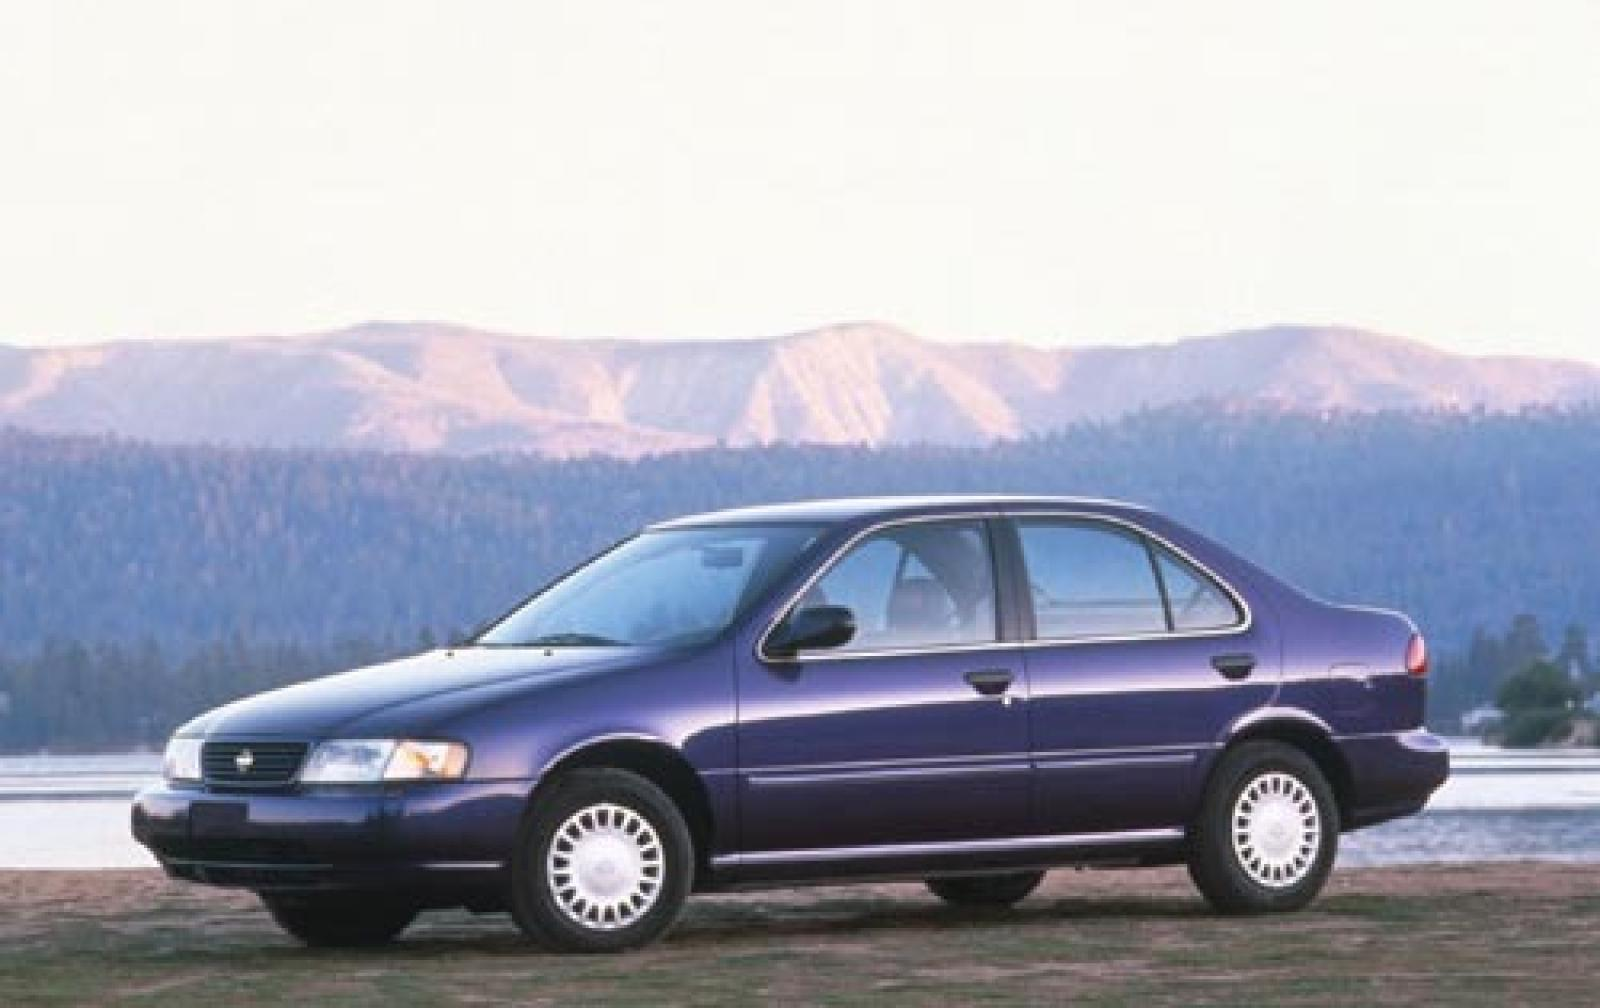 1995 Nissan Sentra - Information and photos - ZombieDrive